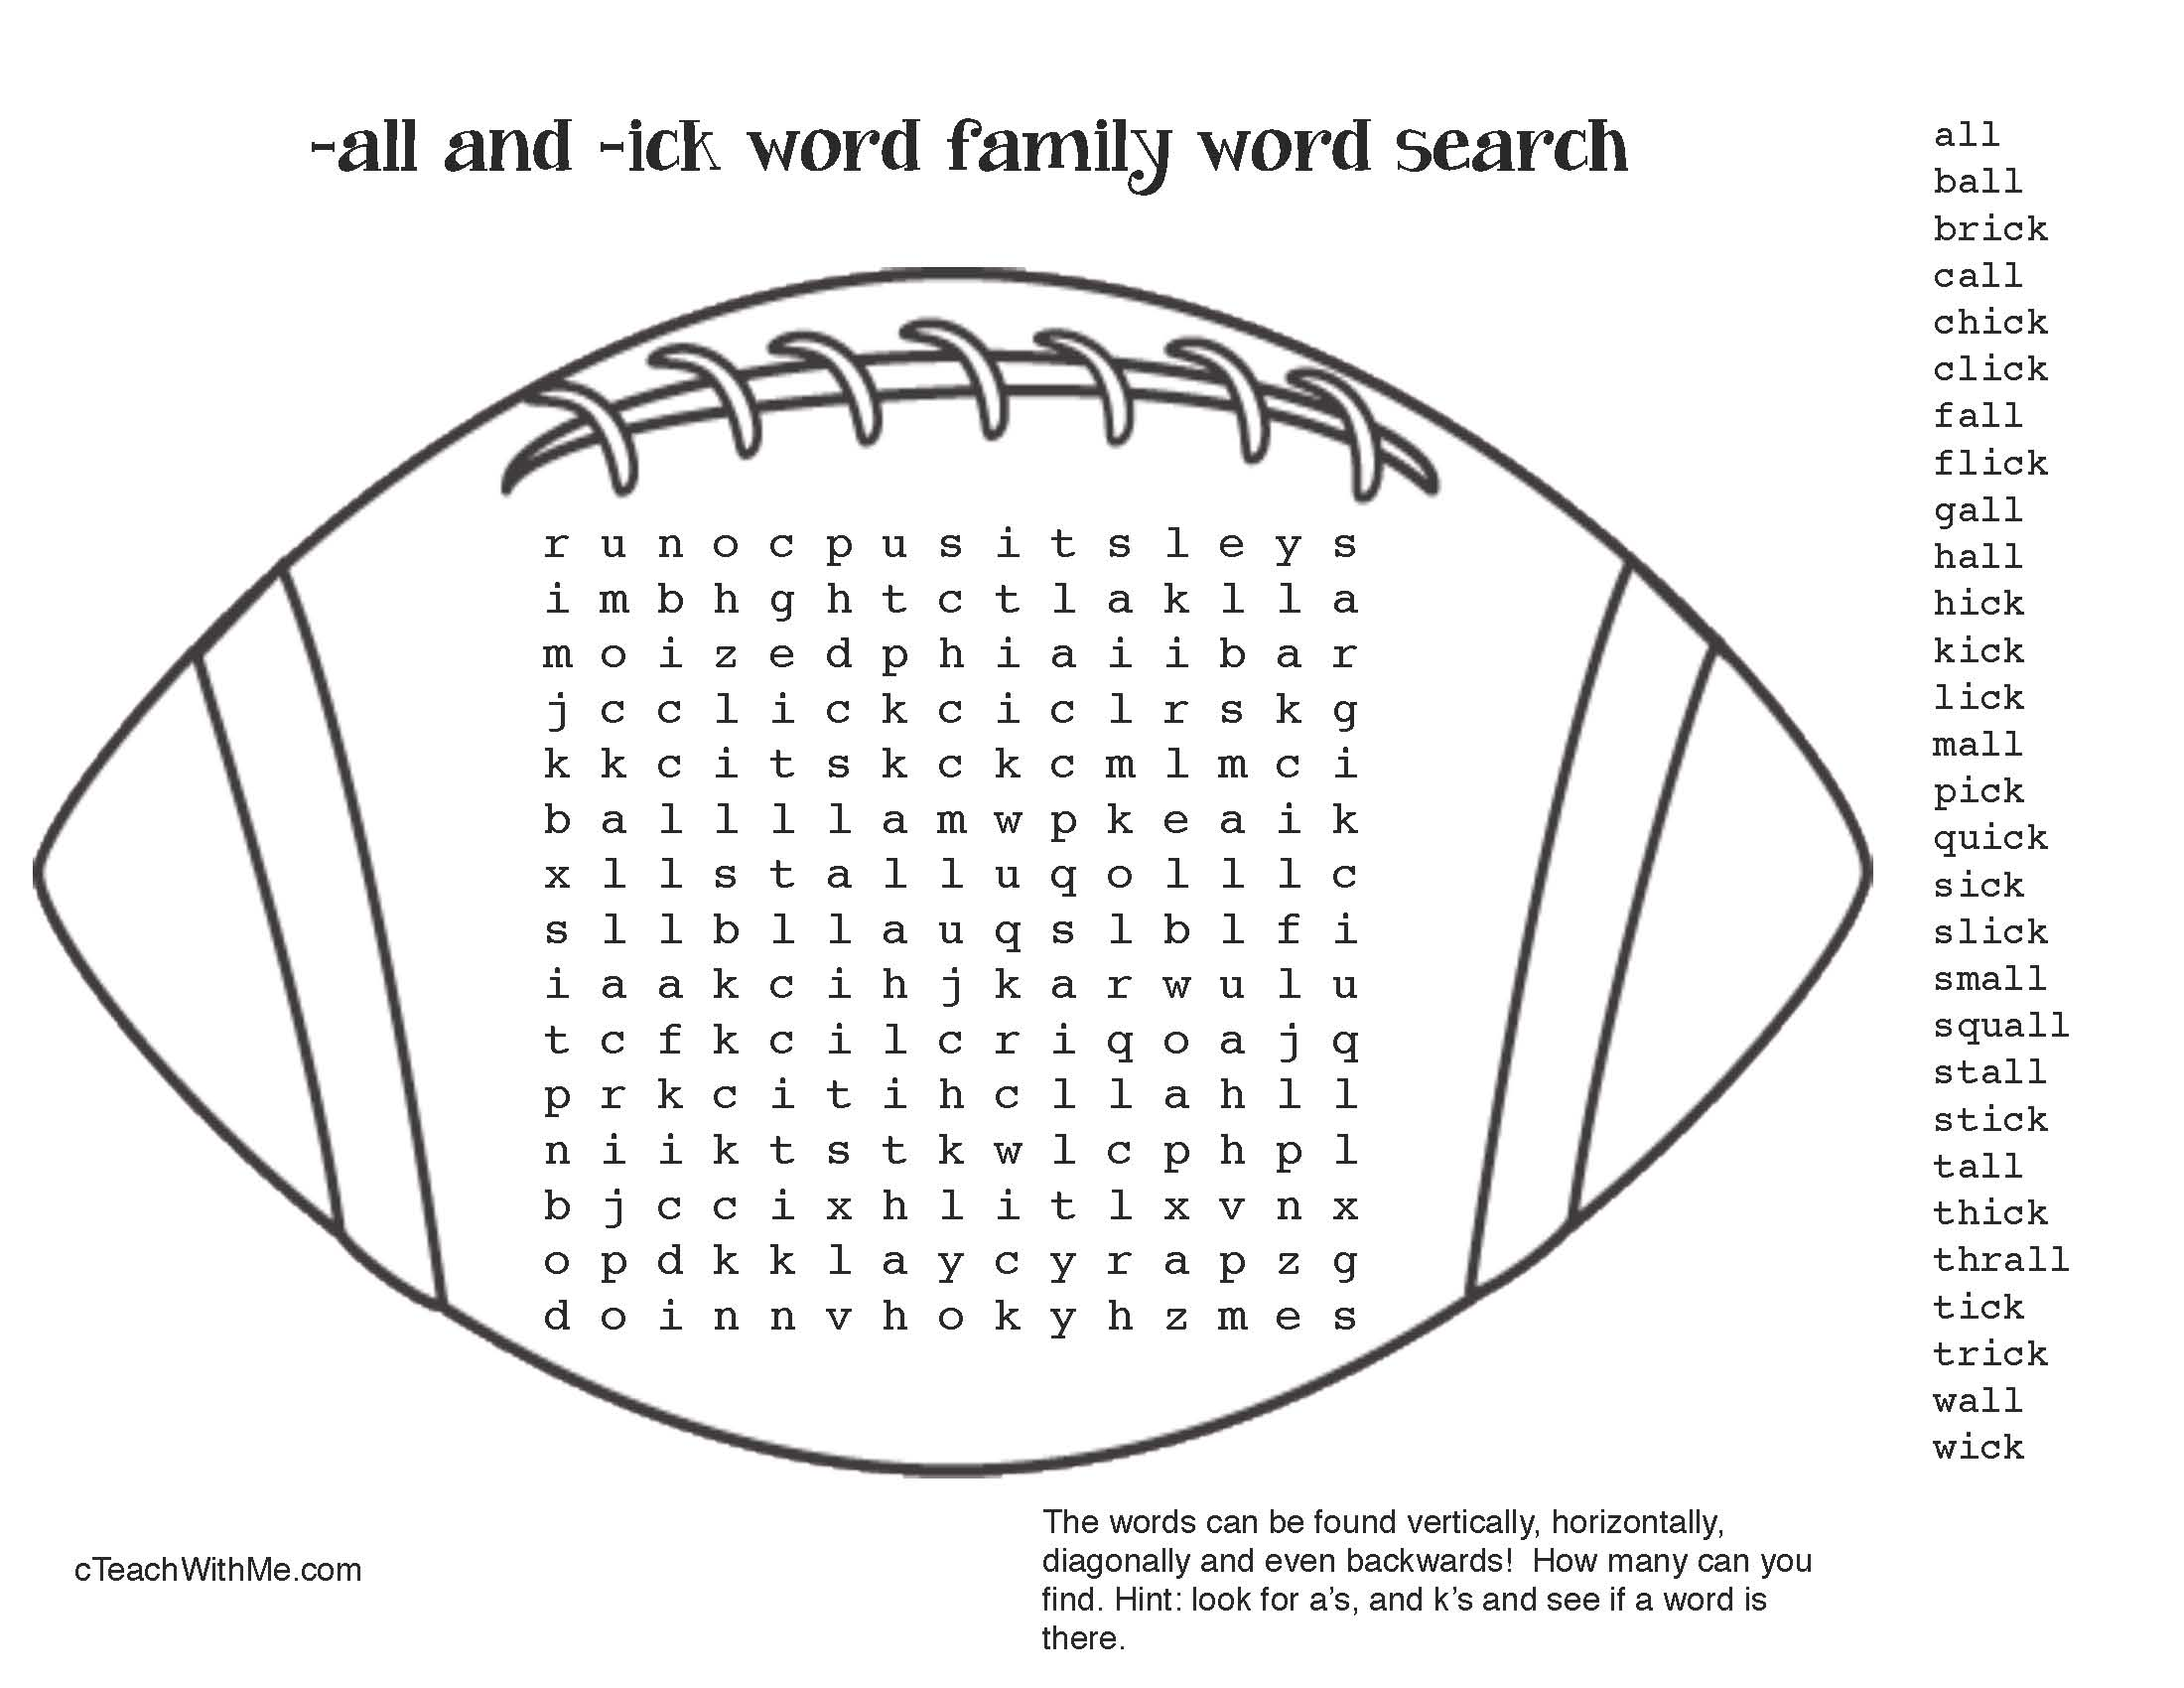 football activities, word family activities, common core football, ick word family activities, all word family activities, word family cards, fall games, fall centers, daily 5 for fall, word work for fall, bingo games for word families, alphabetizing worksheets,